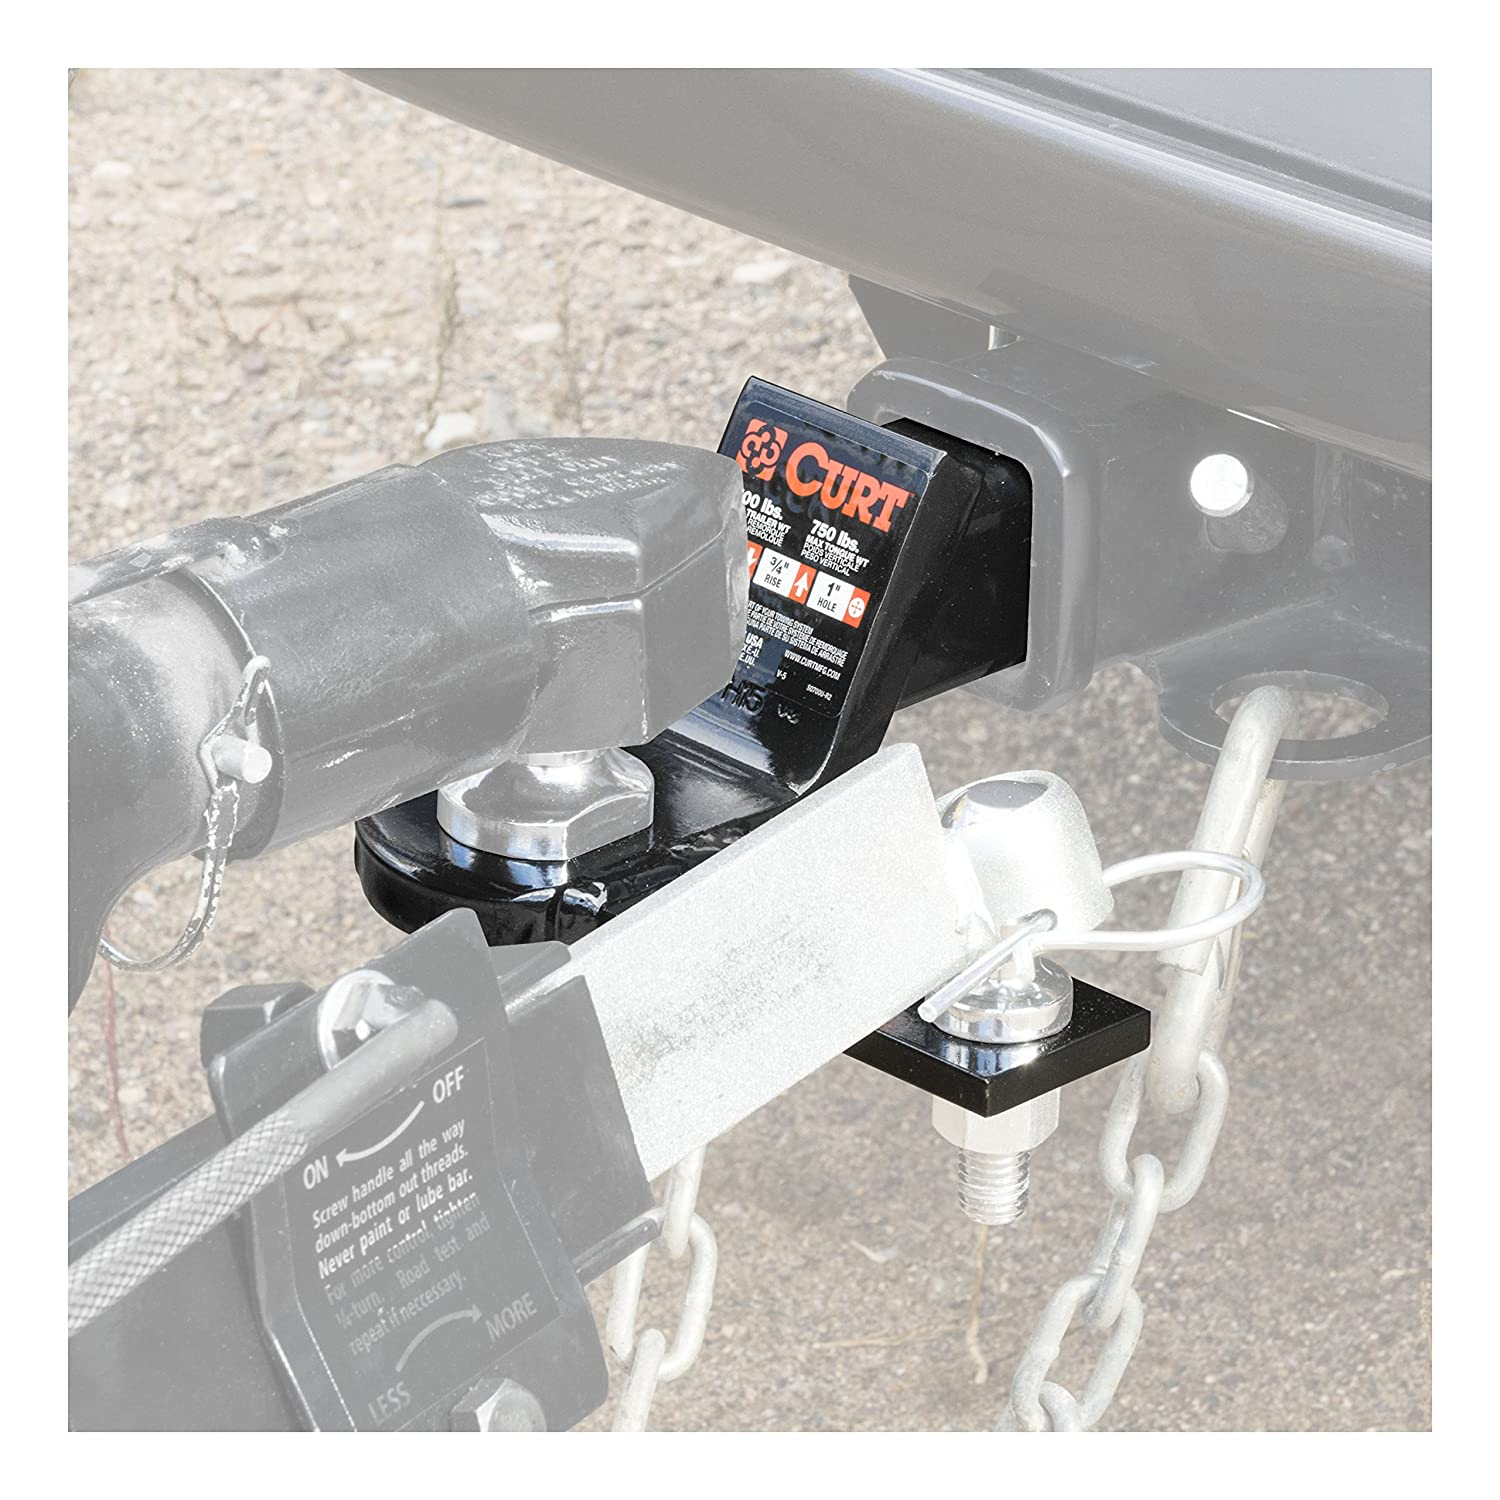 1-Inch Ball Hole Fits 2-Inch Receiver 2-Inch Drop GTW 5//8-Inch Sway Ball Hole CURT 45820 Anti Sway Hitch Ball Mount 3//4-Inch Rise 7,500 lbs